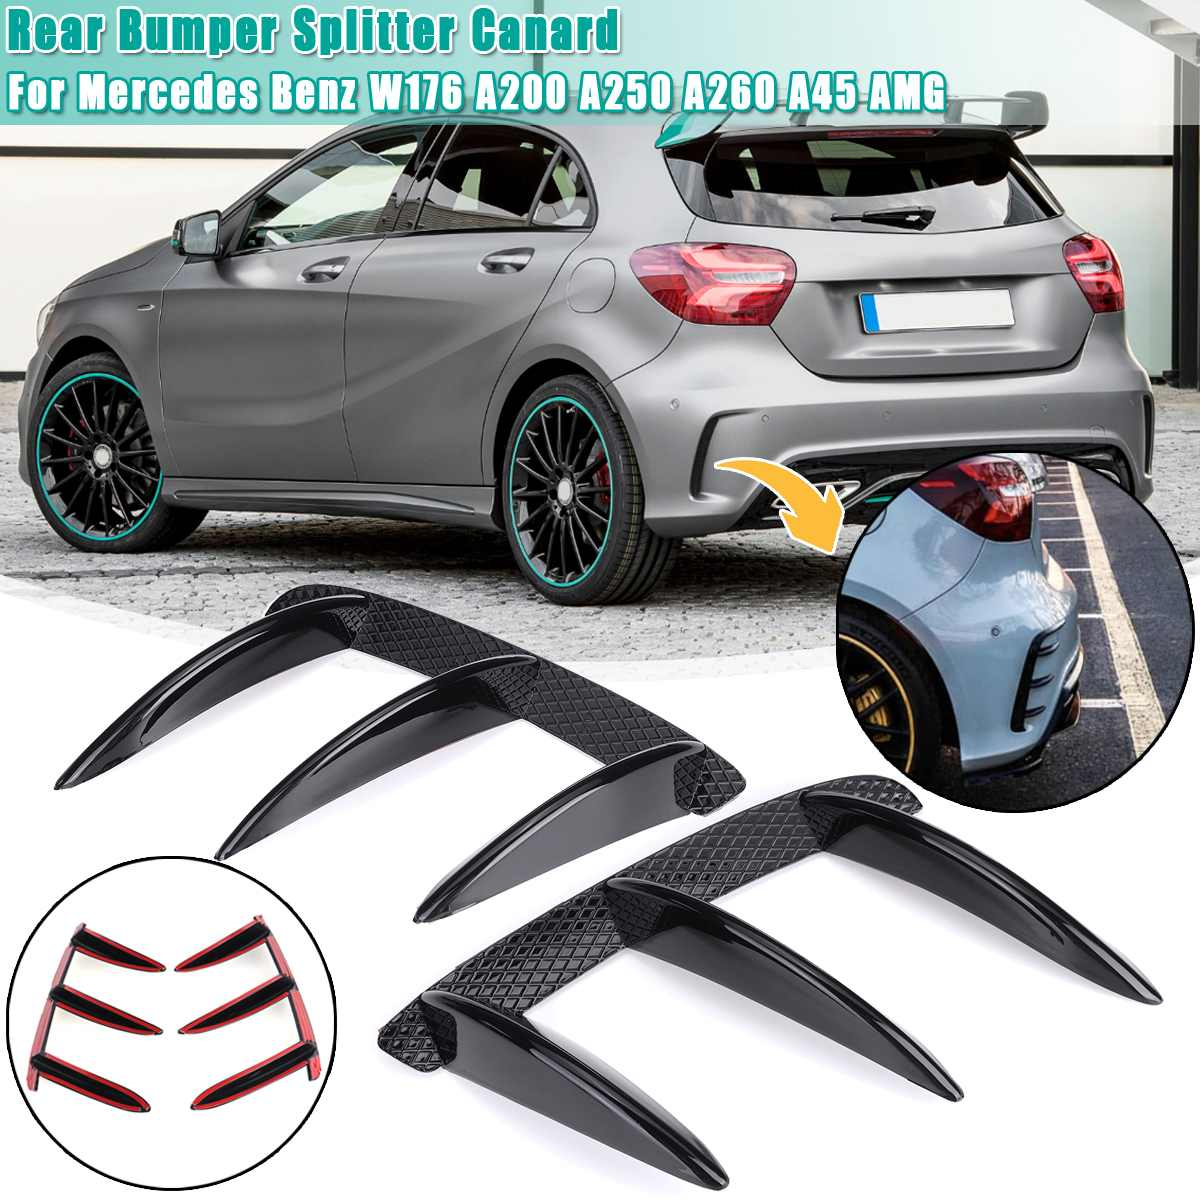 Car ABS Black Rear Bumper Spoiler Canards For <font><b>Mercedes</b></font> for <font><b>Benz</b></font> <font><b>W176</b></font> <font><b>A200</b></font> A250 A260 A45 for AMG 2PCS Replacement accessories image